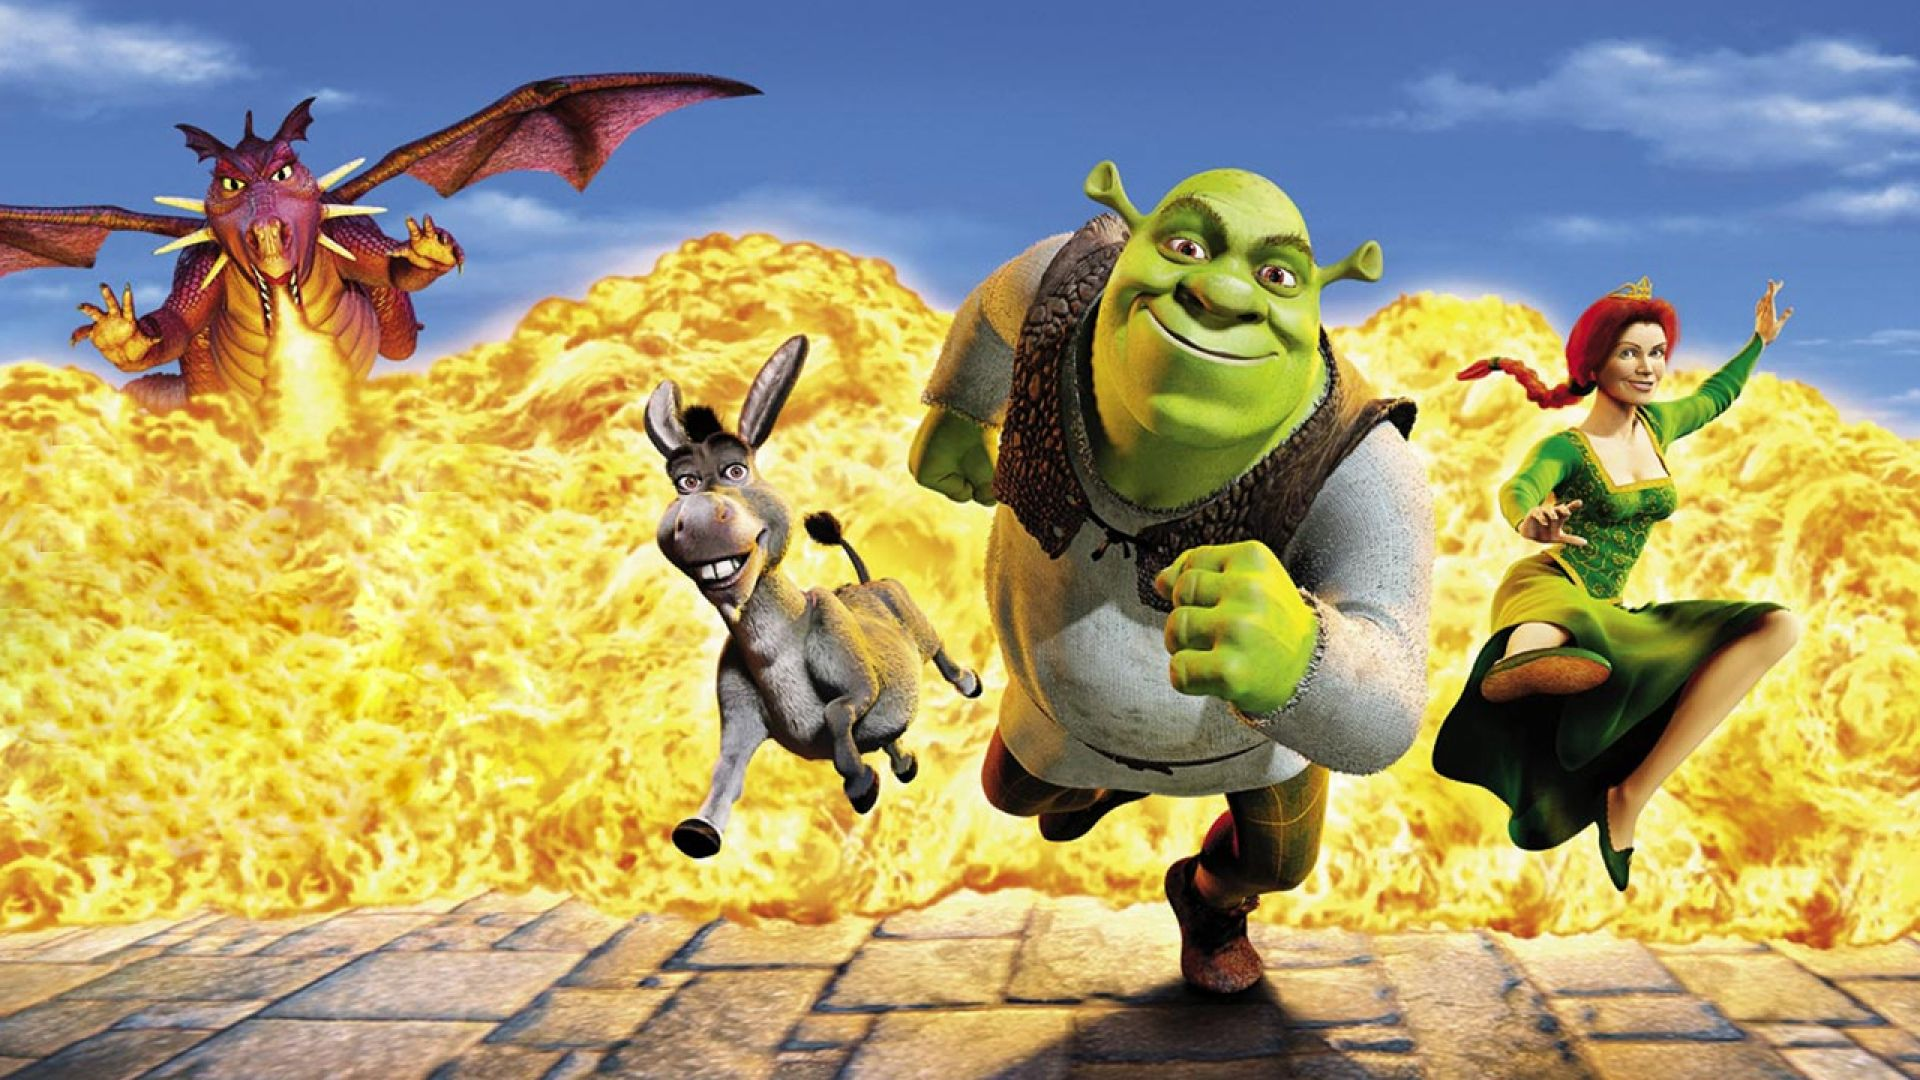 1 Shrek Extra Large HD Wallpapers | Backgrounds - Wallpaper Abyss